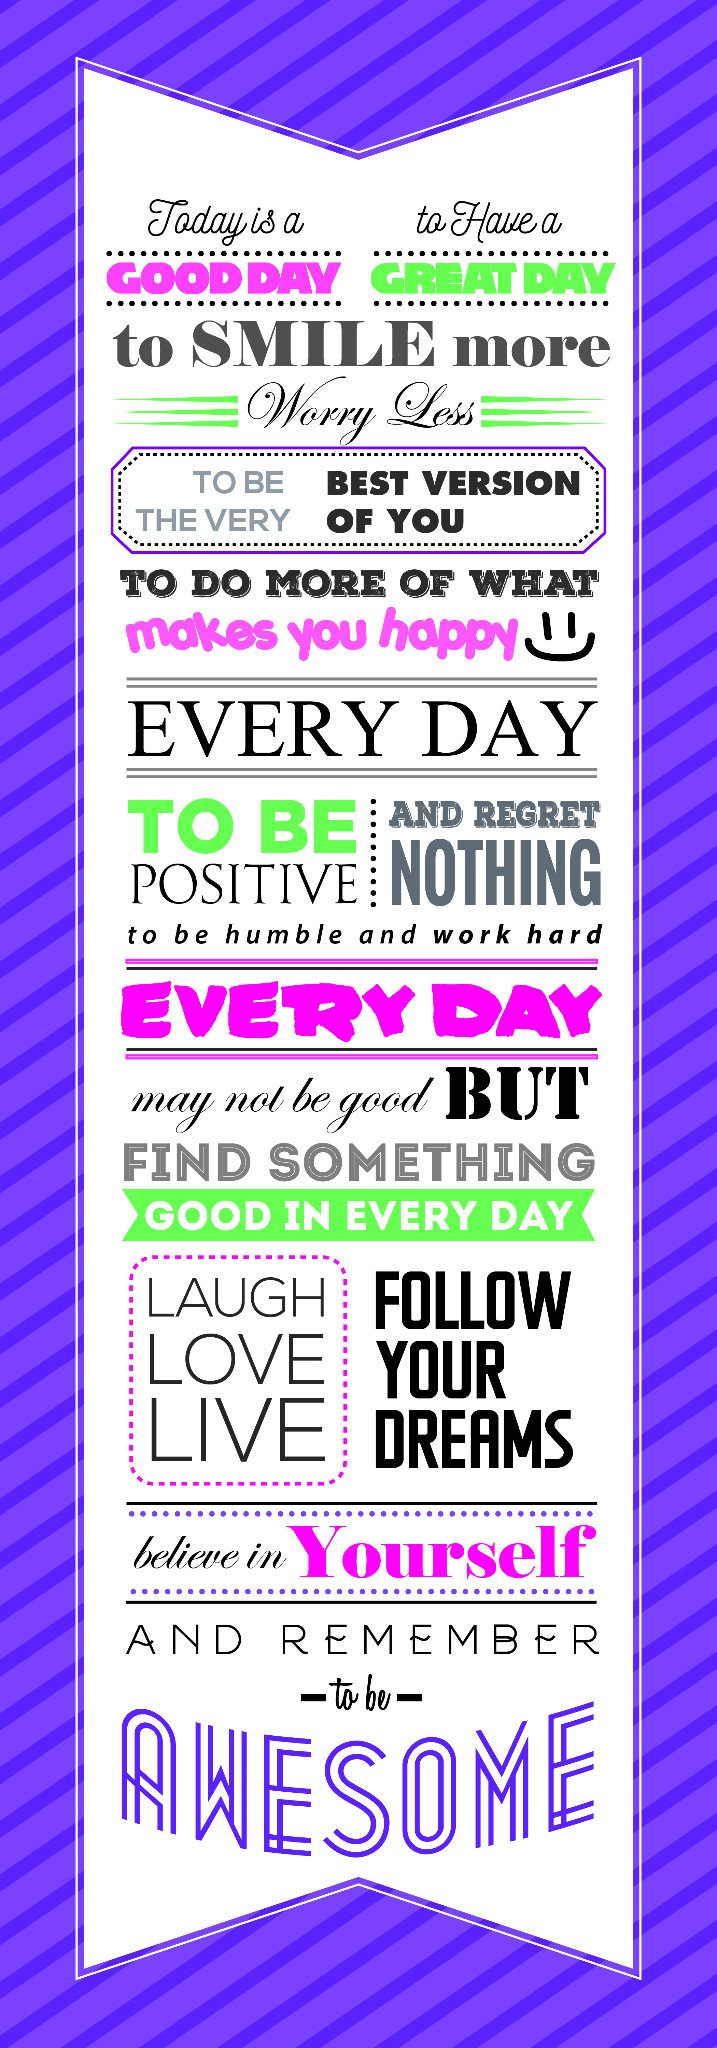 Today is a GOOD DAY to Have a Great DayMotivational Quote Poster for Office Staff College Athletes Teams School Classrooms and Home 14x40 in Inspirational Paper Poster Purple & White Made in the USA